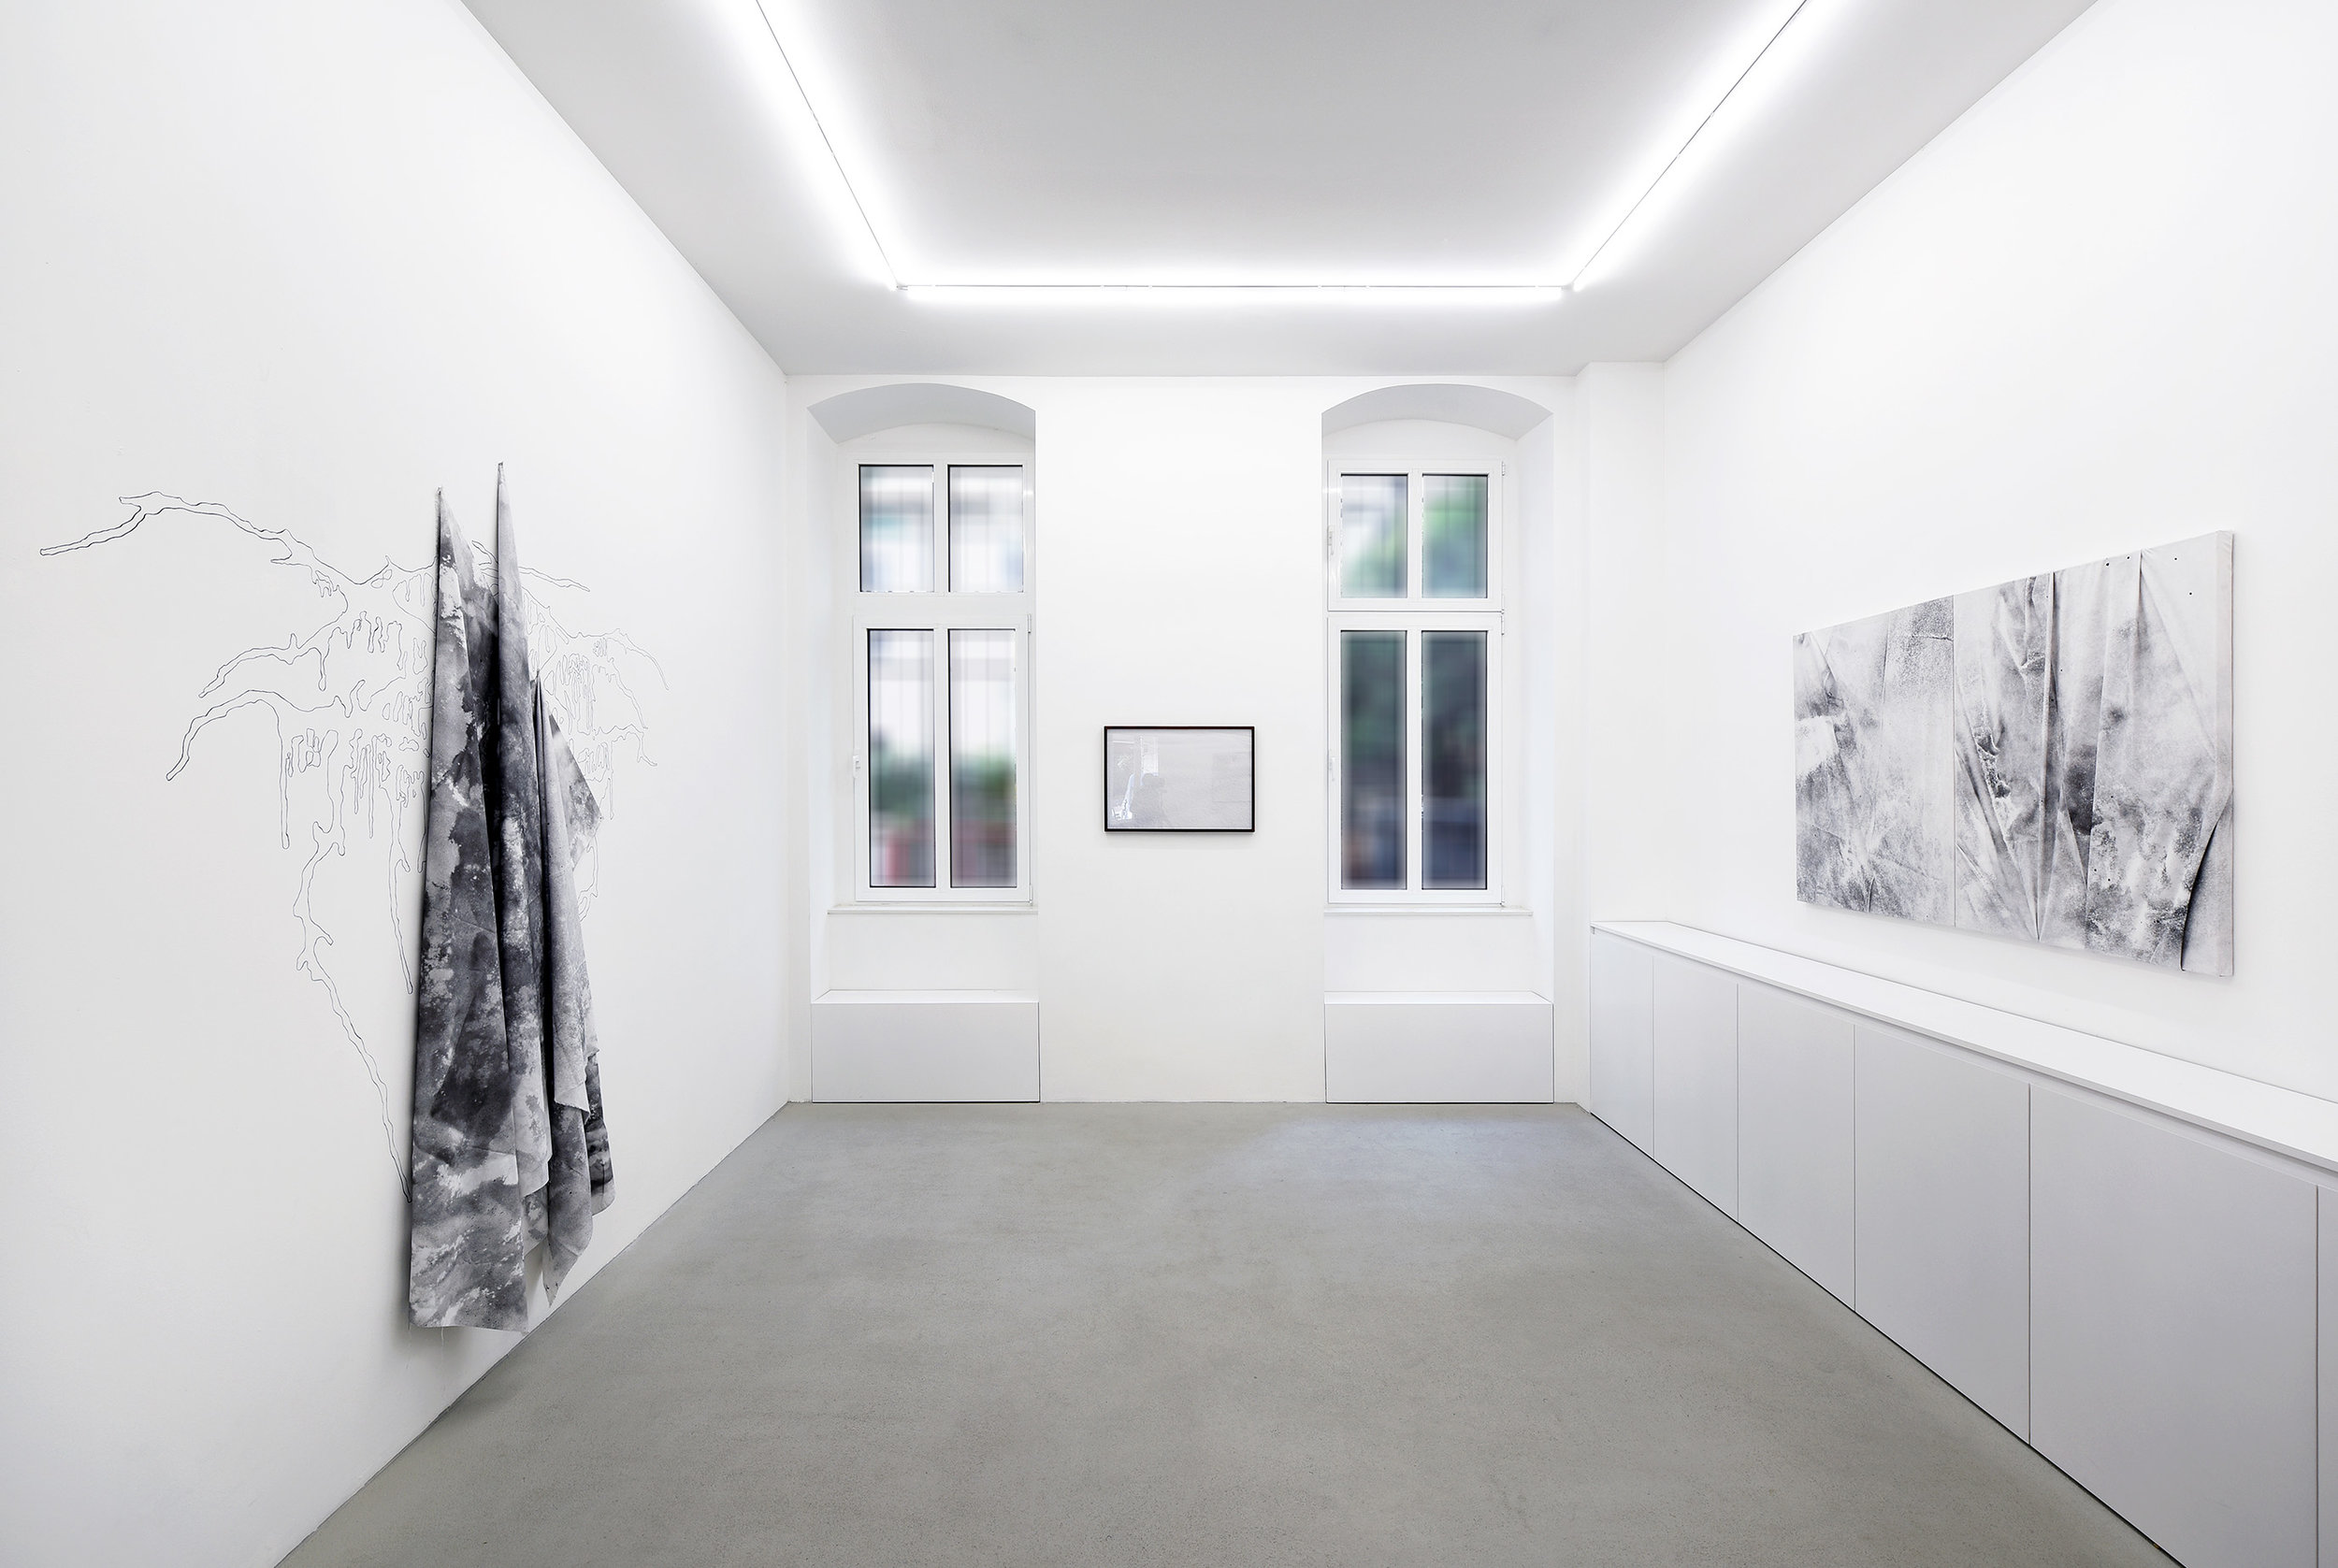 Installation Shot For  h E ll  at Galerie Rolando Anselmi. Berlin, Germany